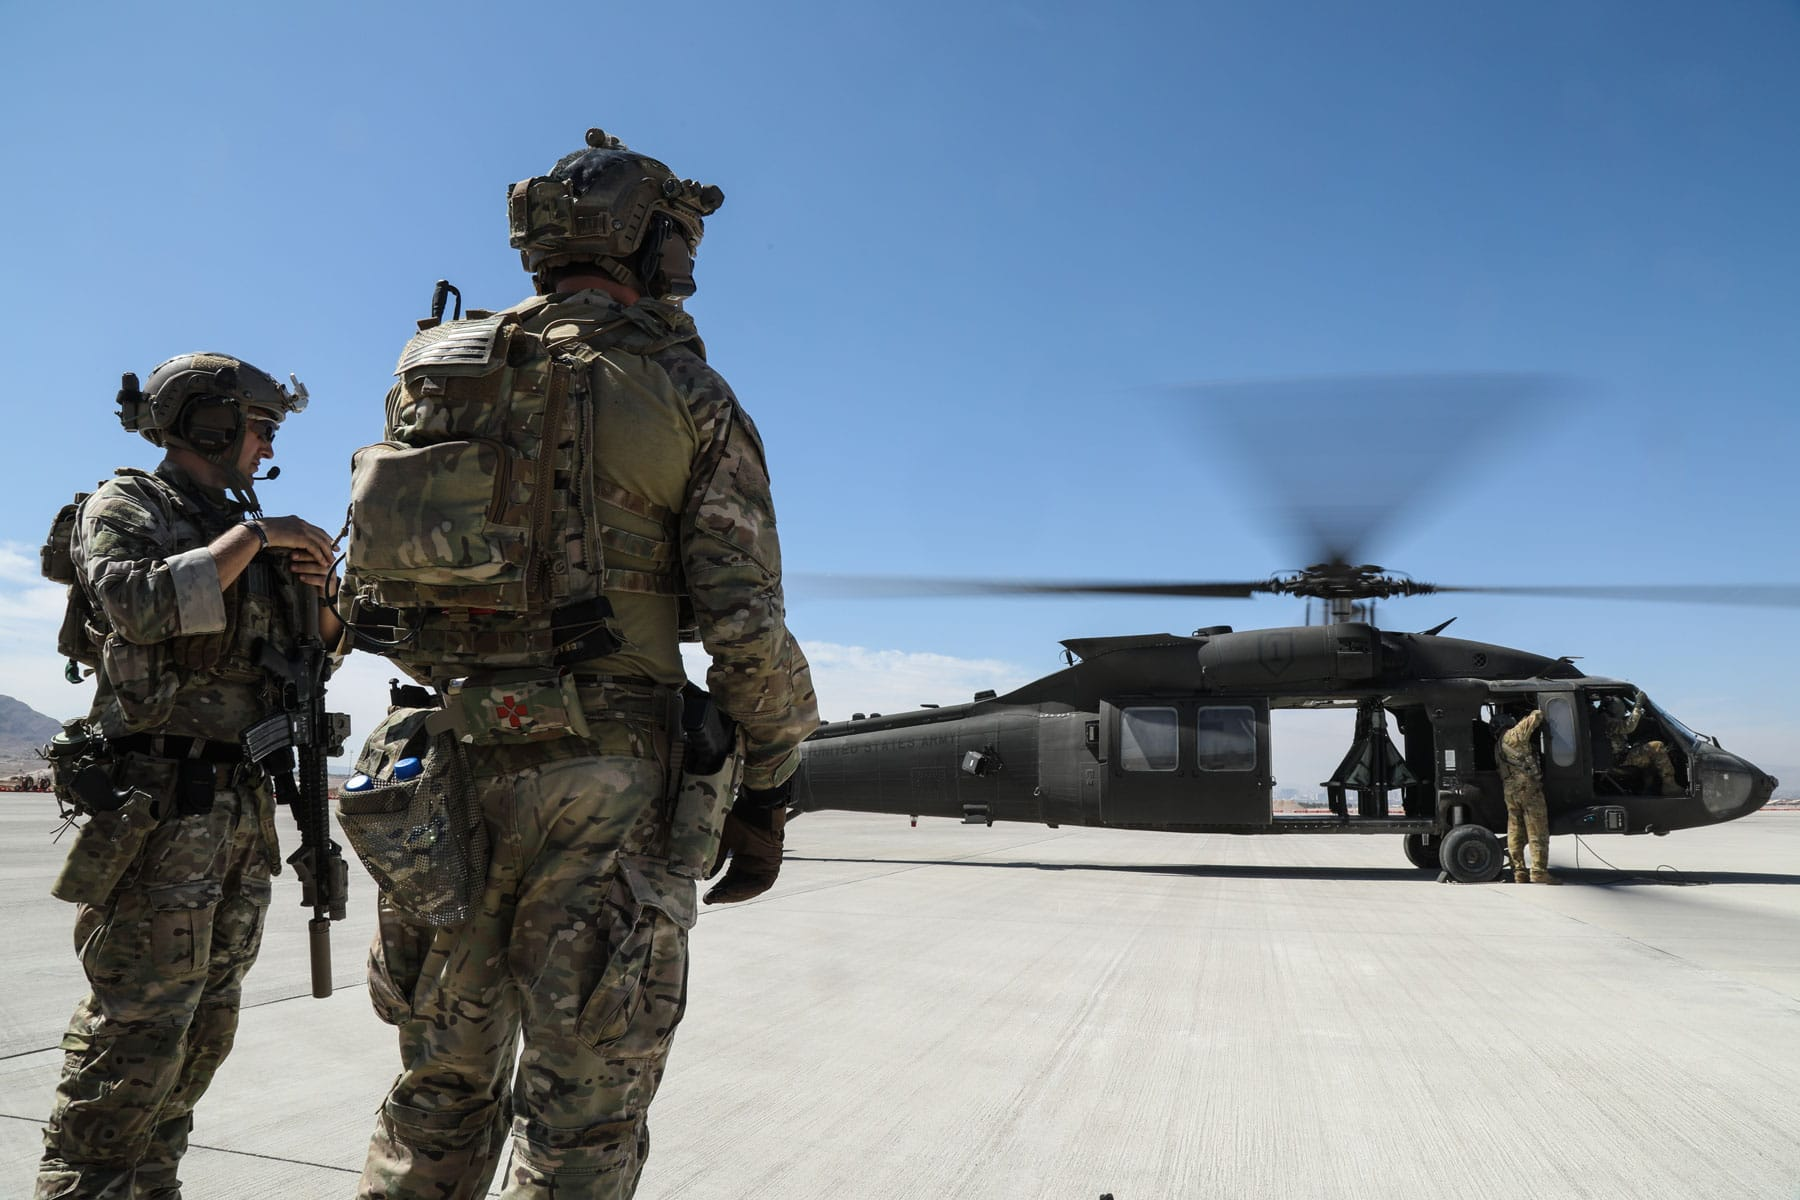 U.S. Army Special Forces Soldiers, assigned to 10th Special Forces Group (Airborne), prepare to load onto a UH-60 Blackhawk helicopter prior to executing a full mission profile on, Nellis AFB, Nevada.